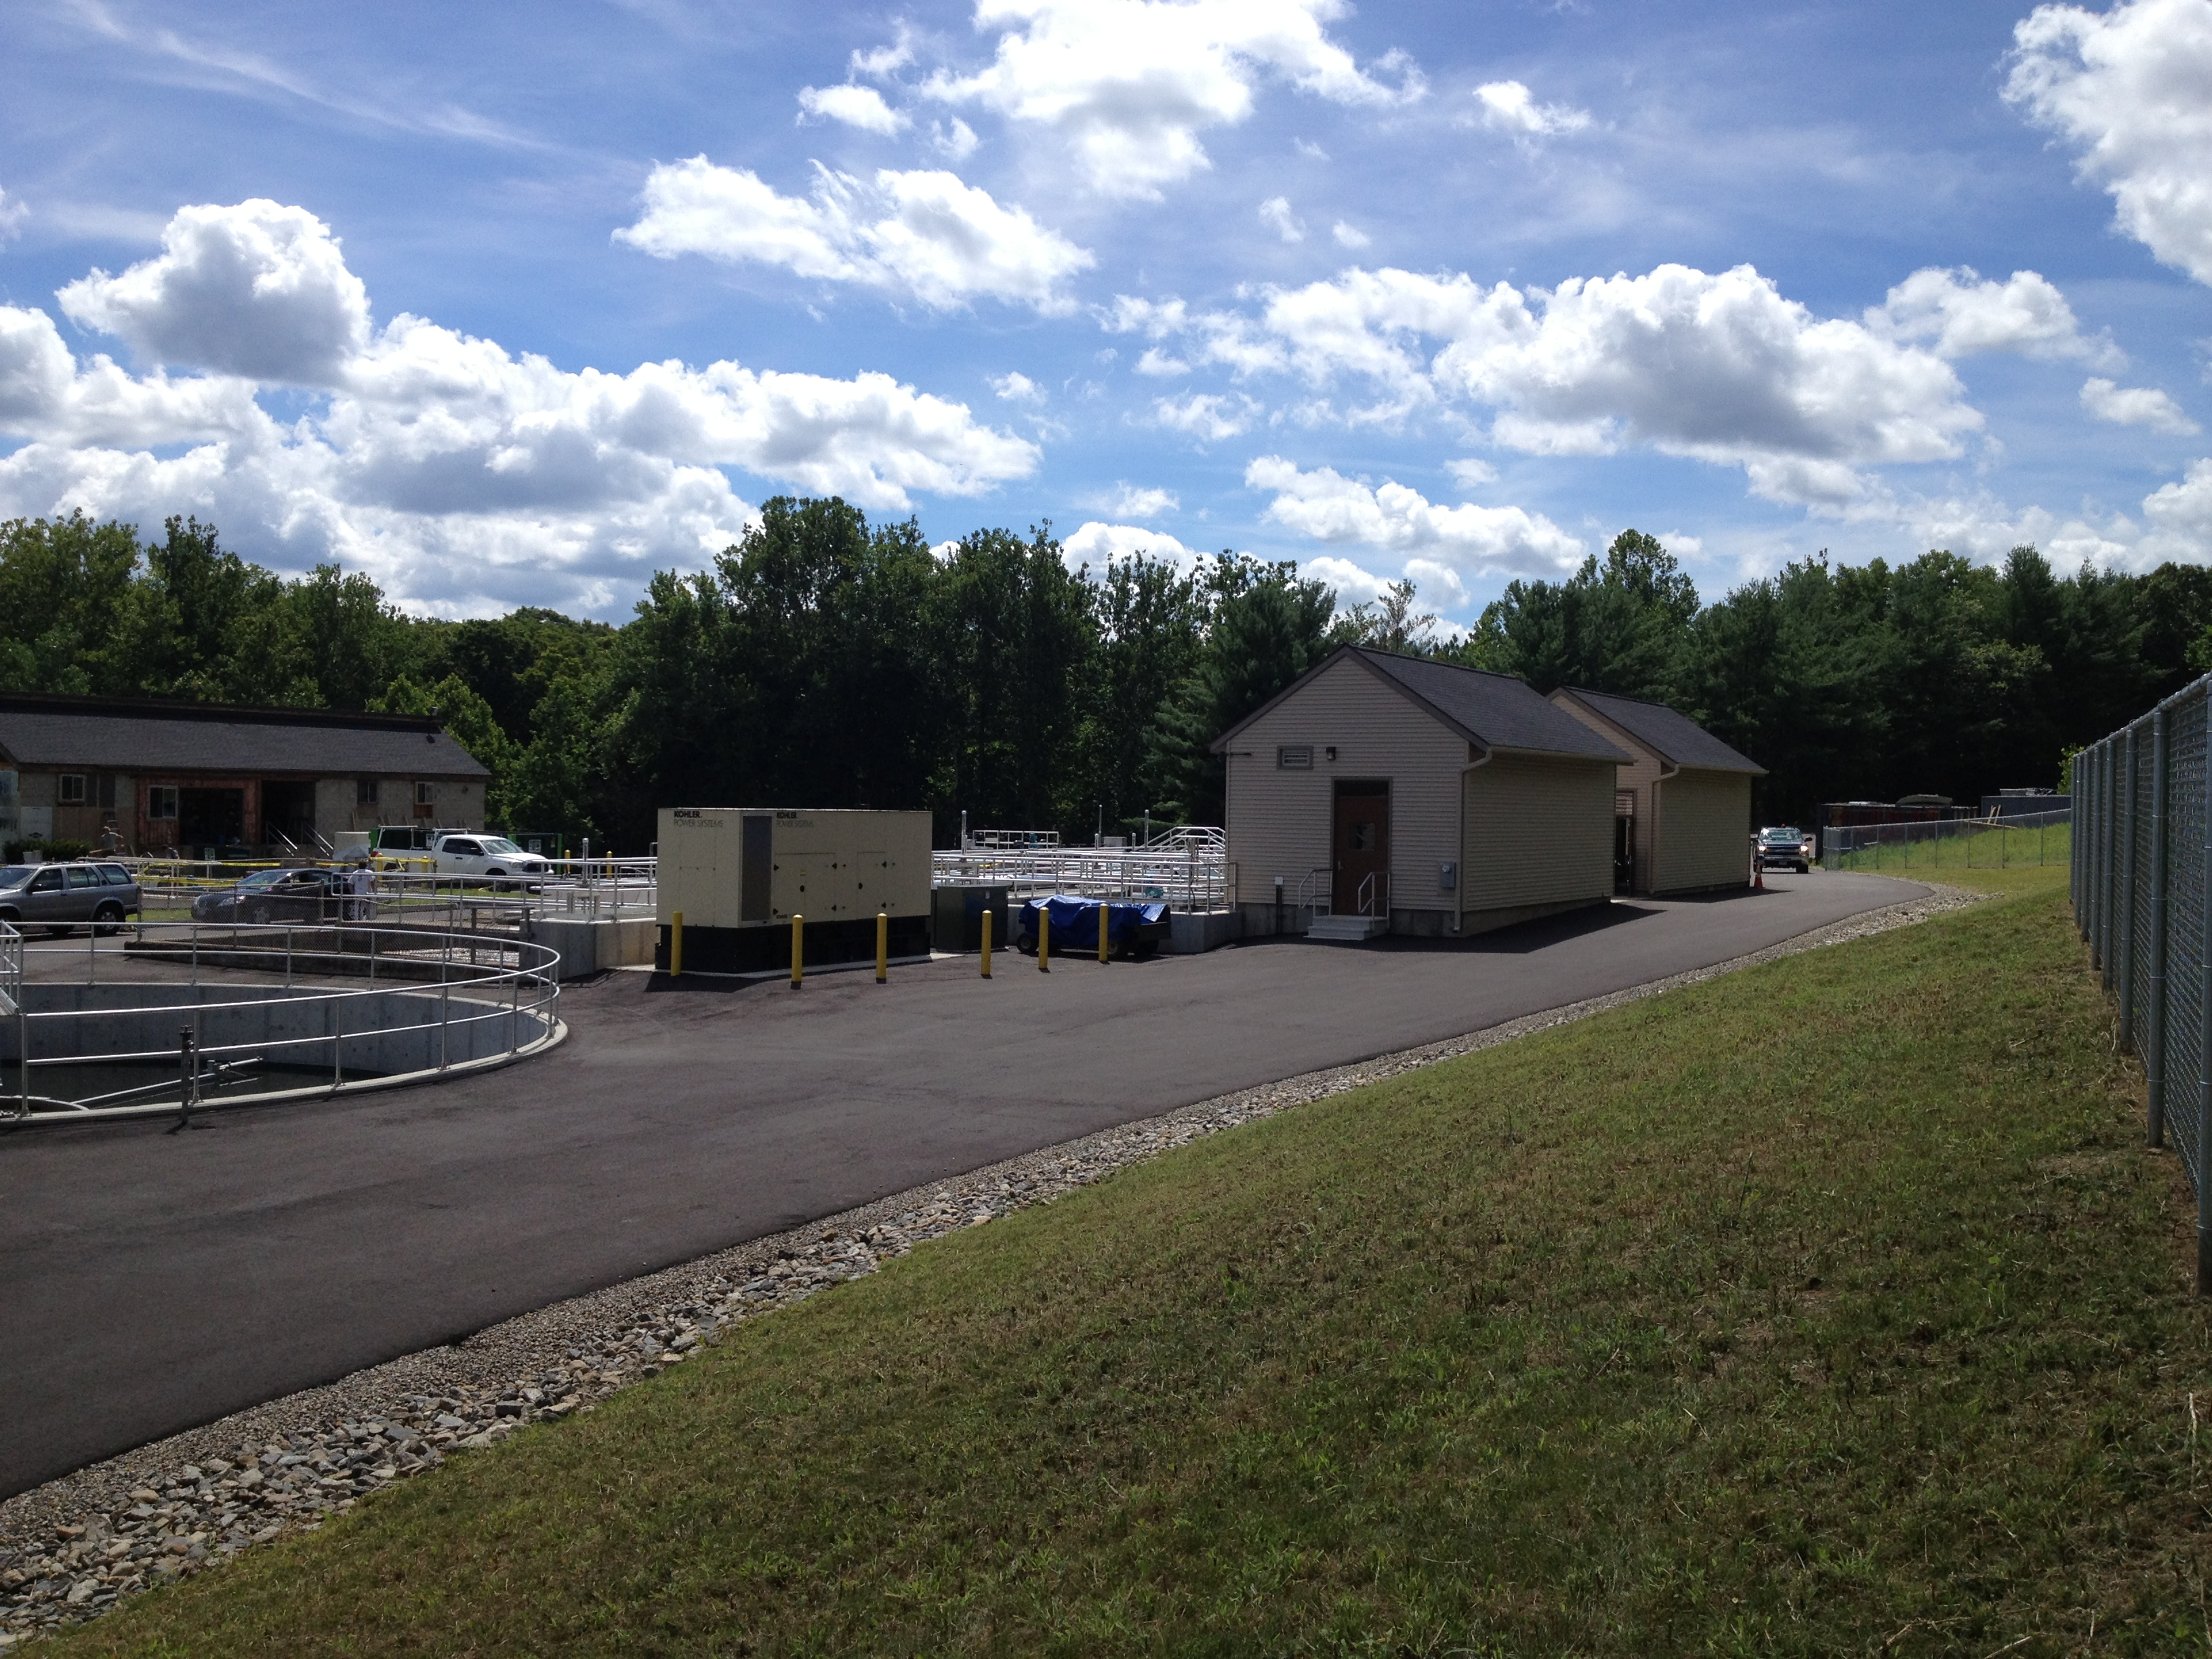 water pollution control Water pollution control manages three individual sanitary sewer systems each having its own treatment plant that serve the more populated regions of stonington including the villages of mystic, old mystic, pawcatuck, and stonington borough.